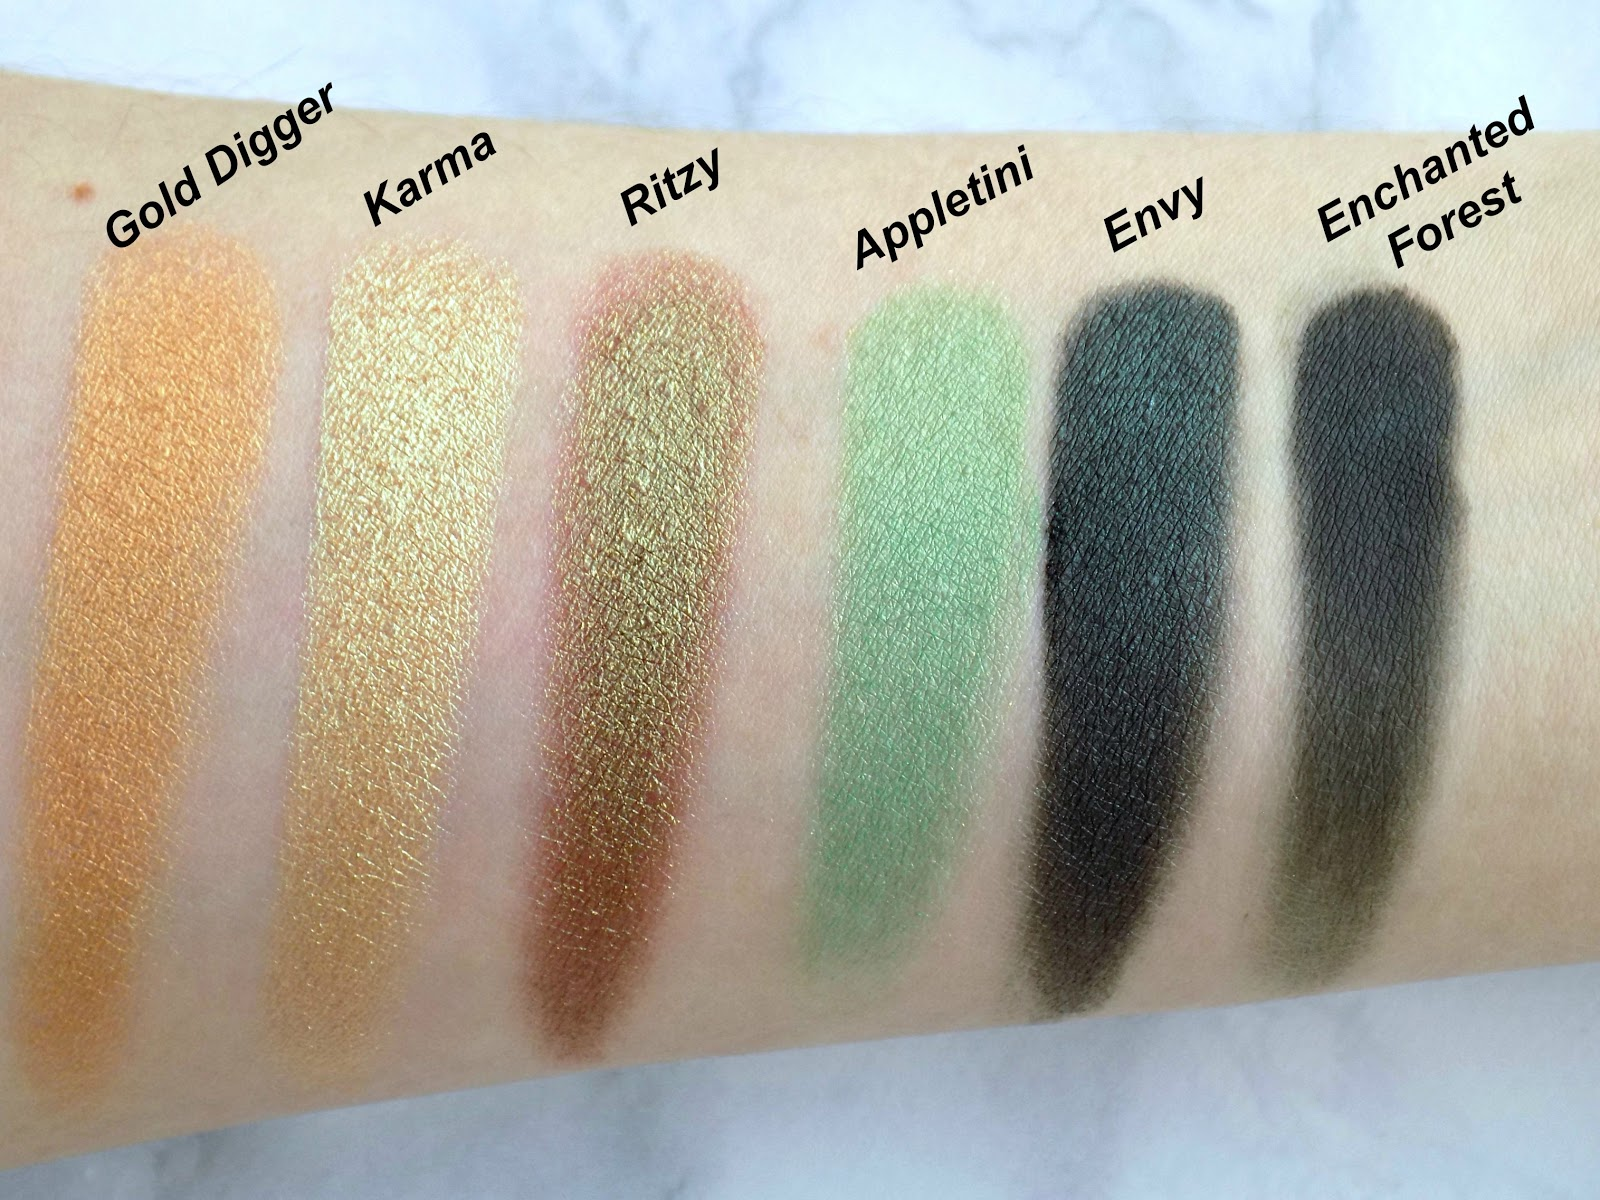 Makeup Geek eyeshadows, my collection, swatches